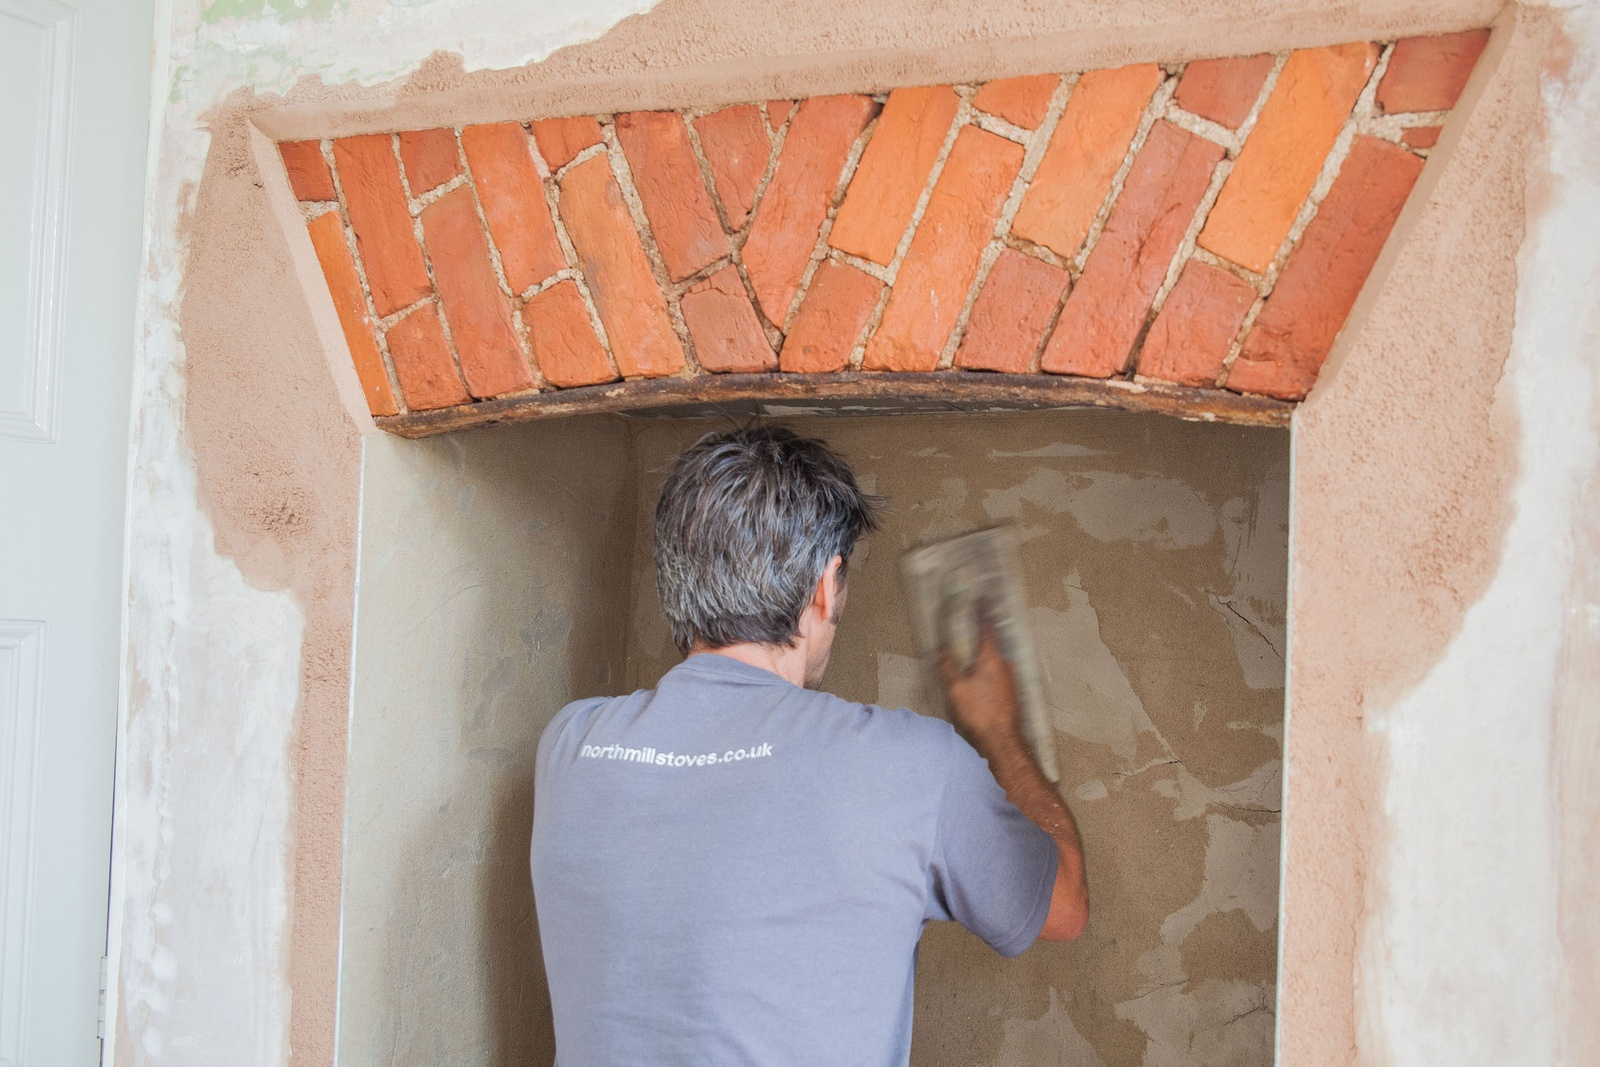 Exposing original fireplace features can lead to some exciting finds!